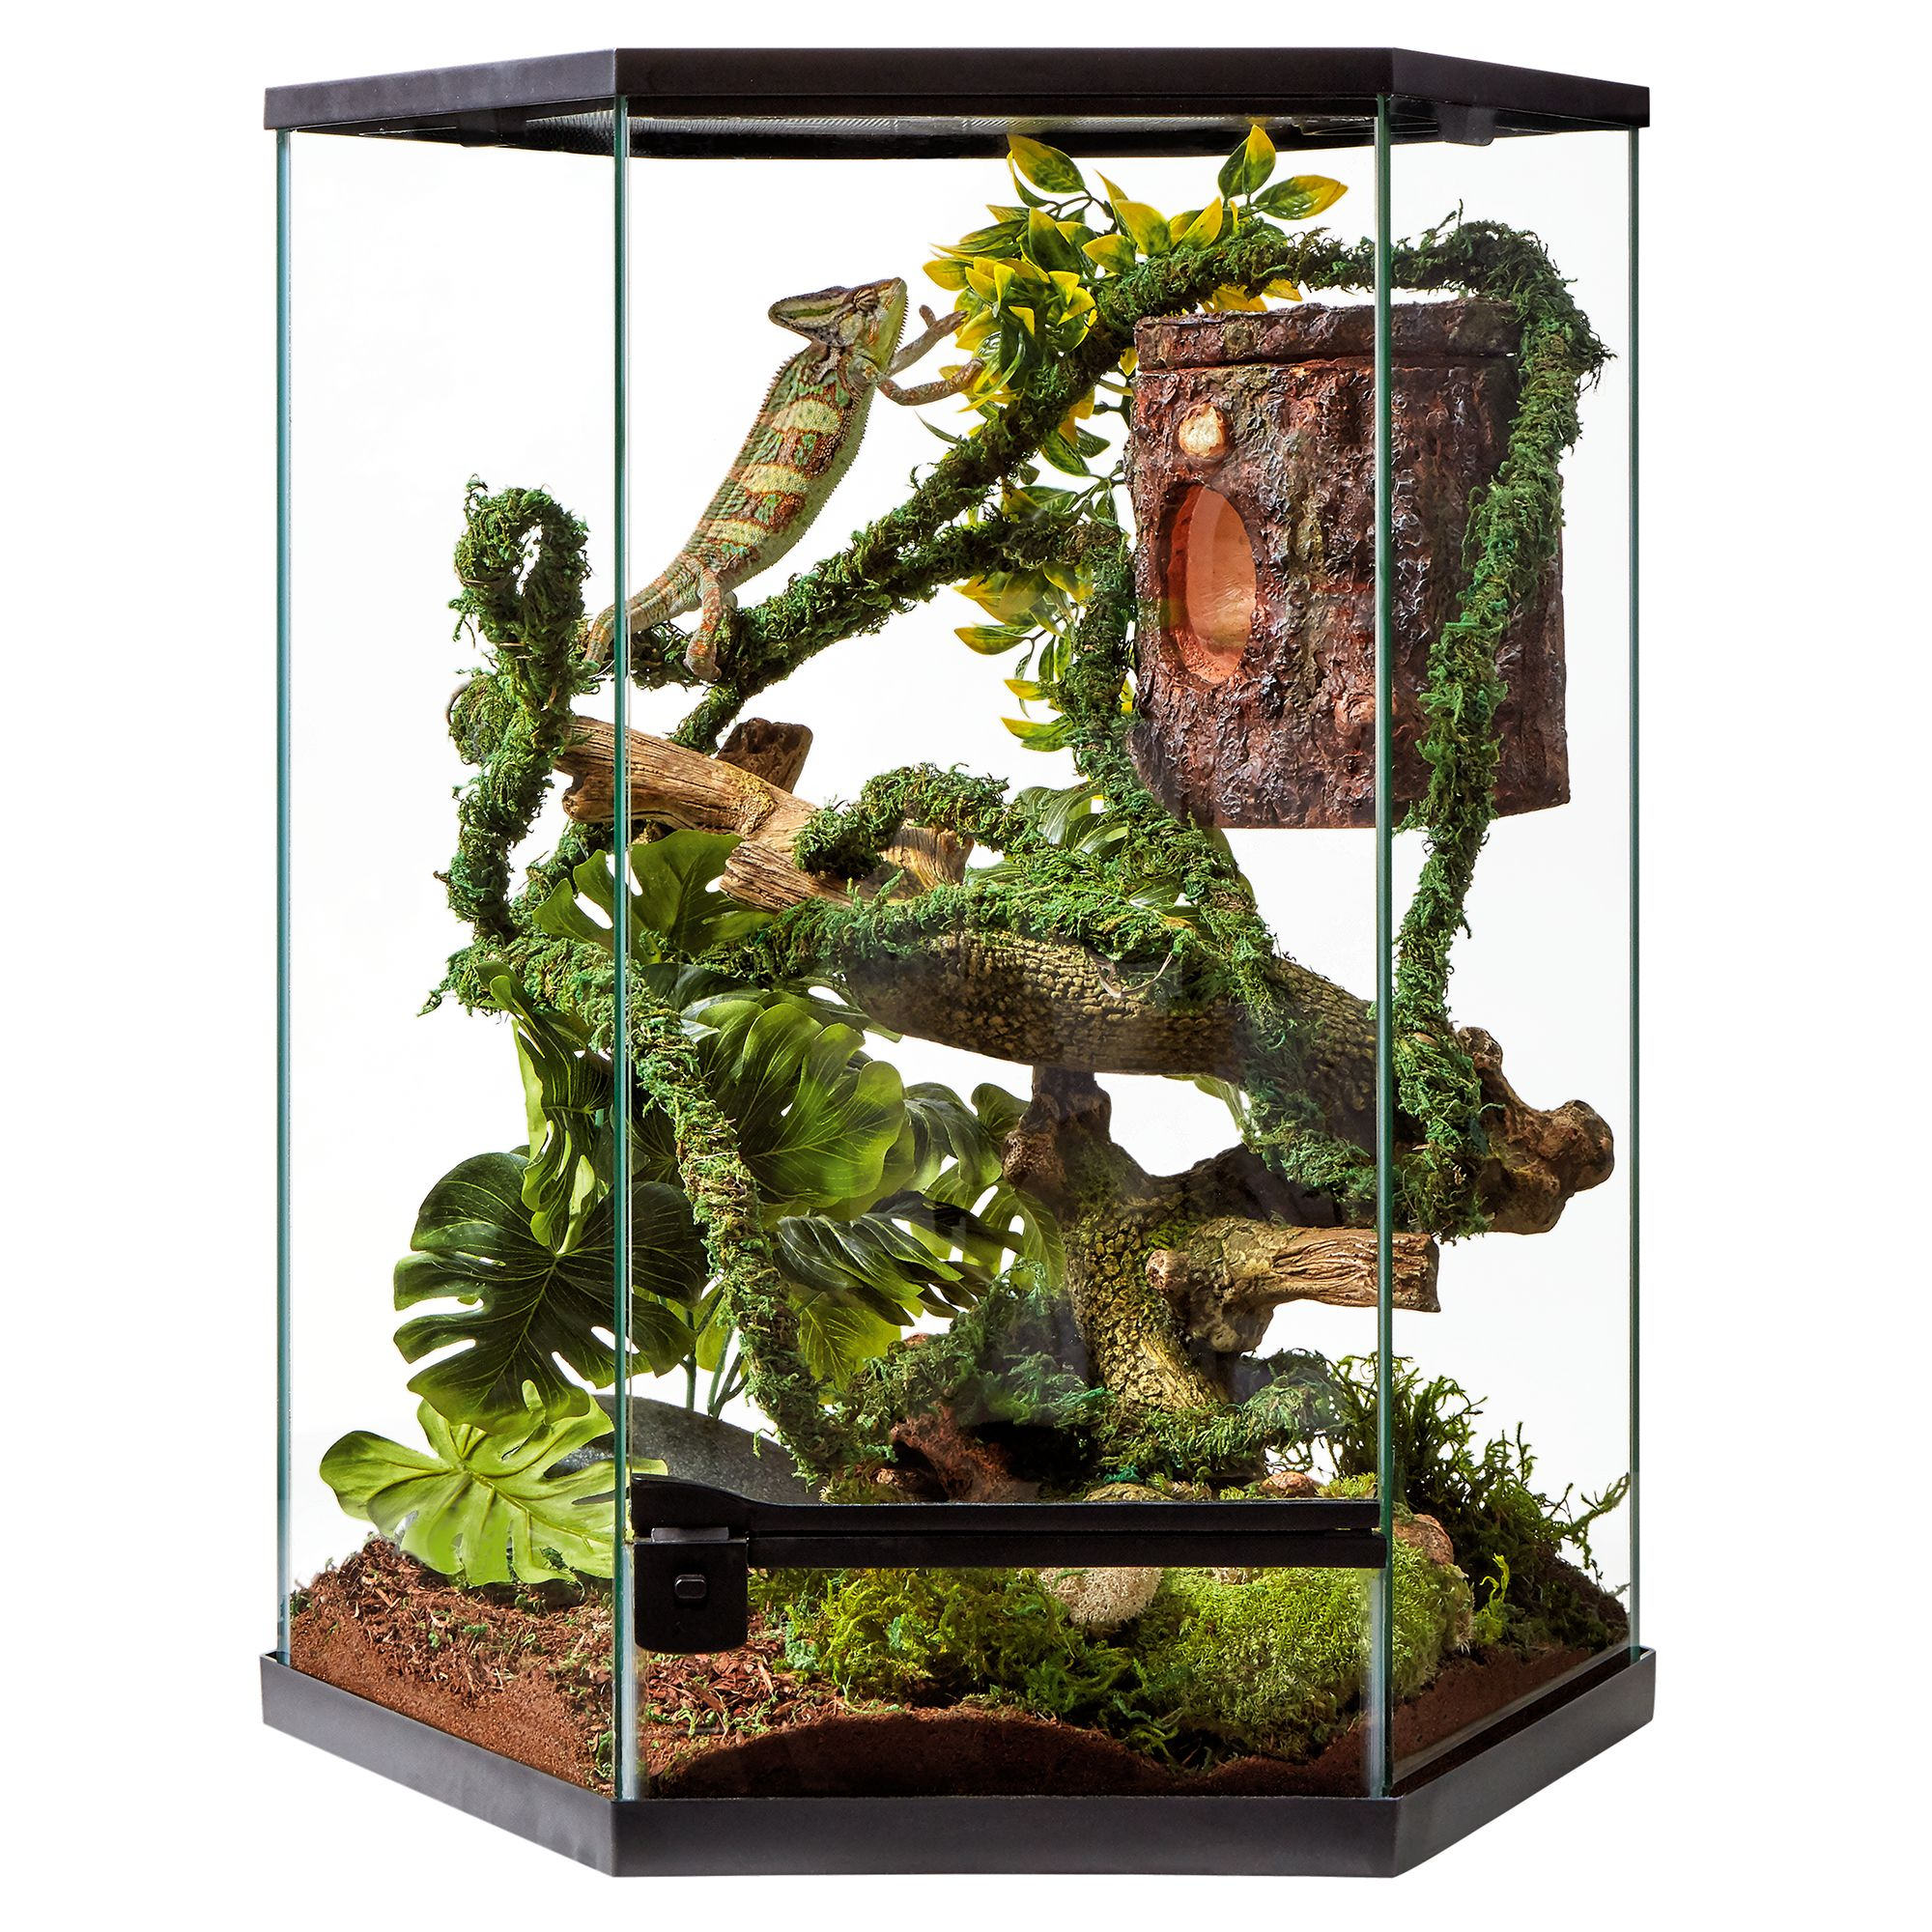 Thrive Tropical Reptile Vertical Hexagon Terrarium 20 Gallon Reptile Terrariums Petsmart